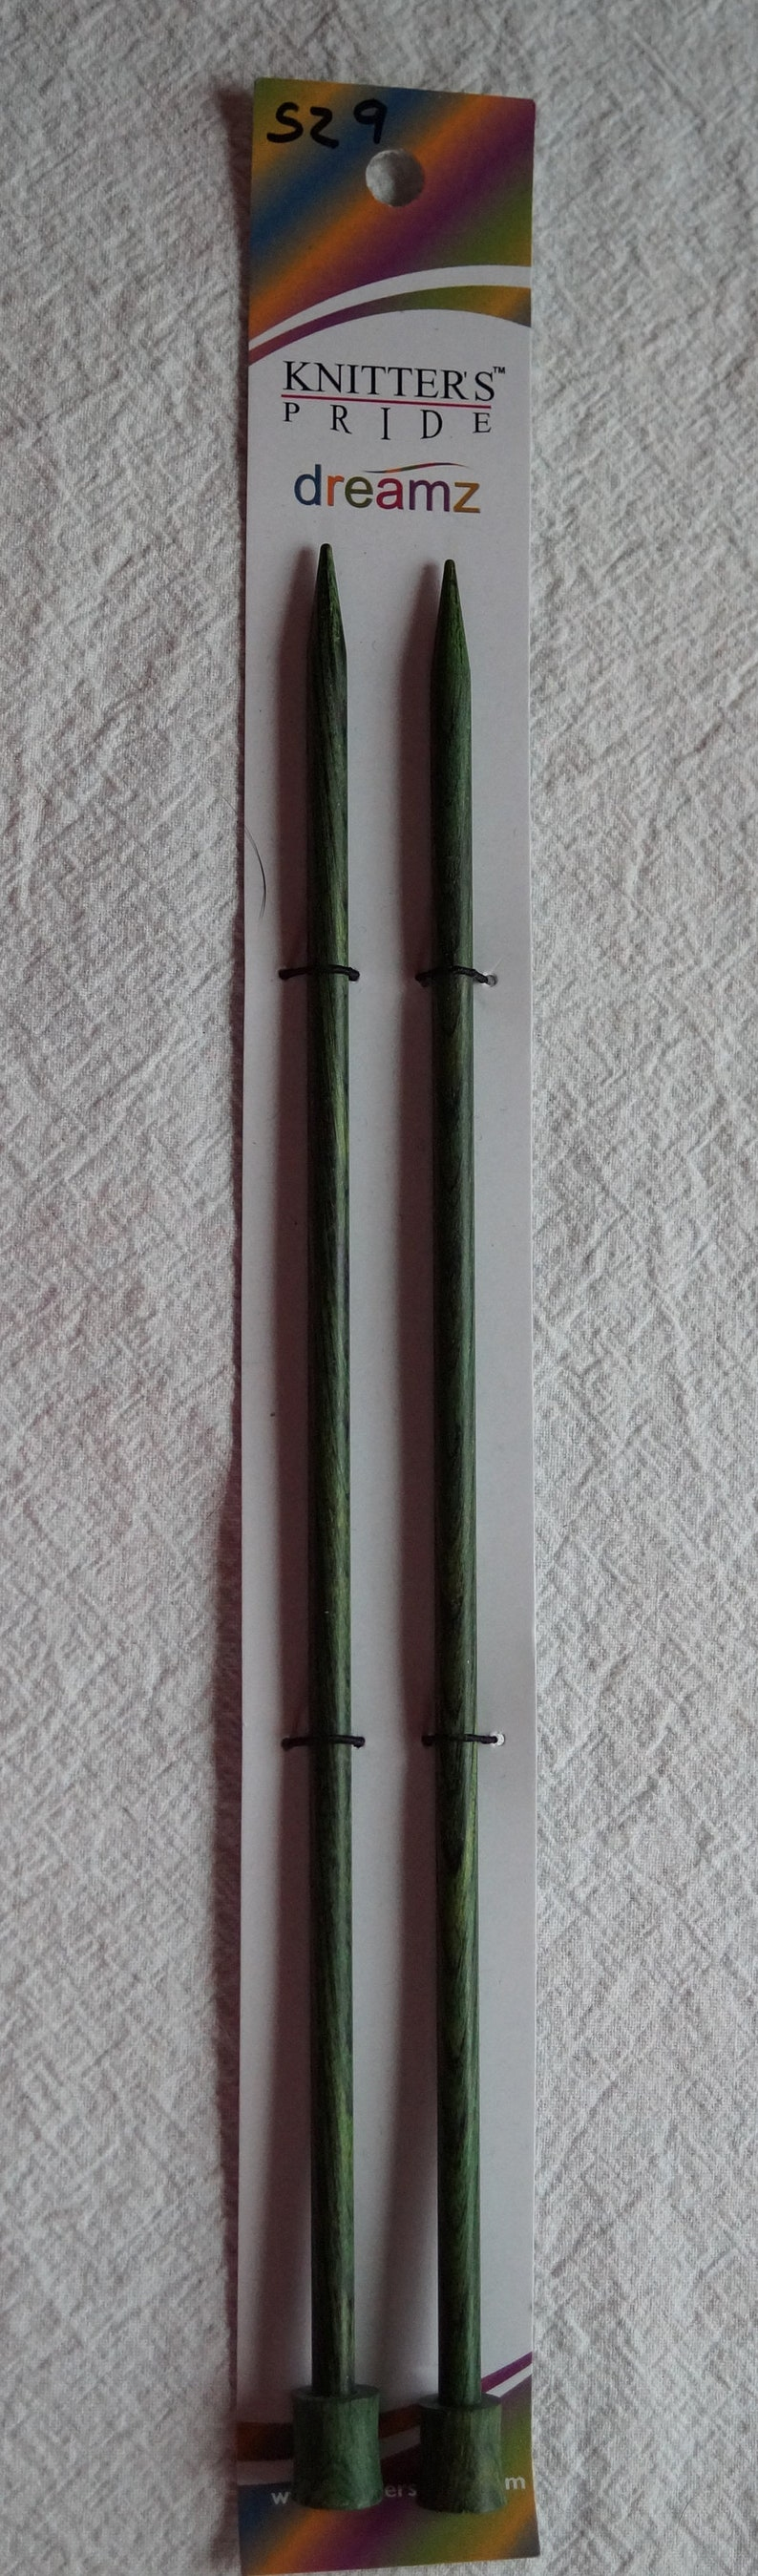 Dreamz 14 inch single point colored wood knitting needles free shipping offer